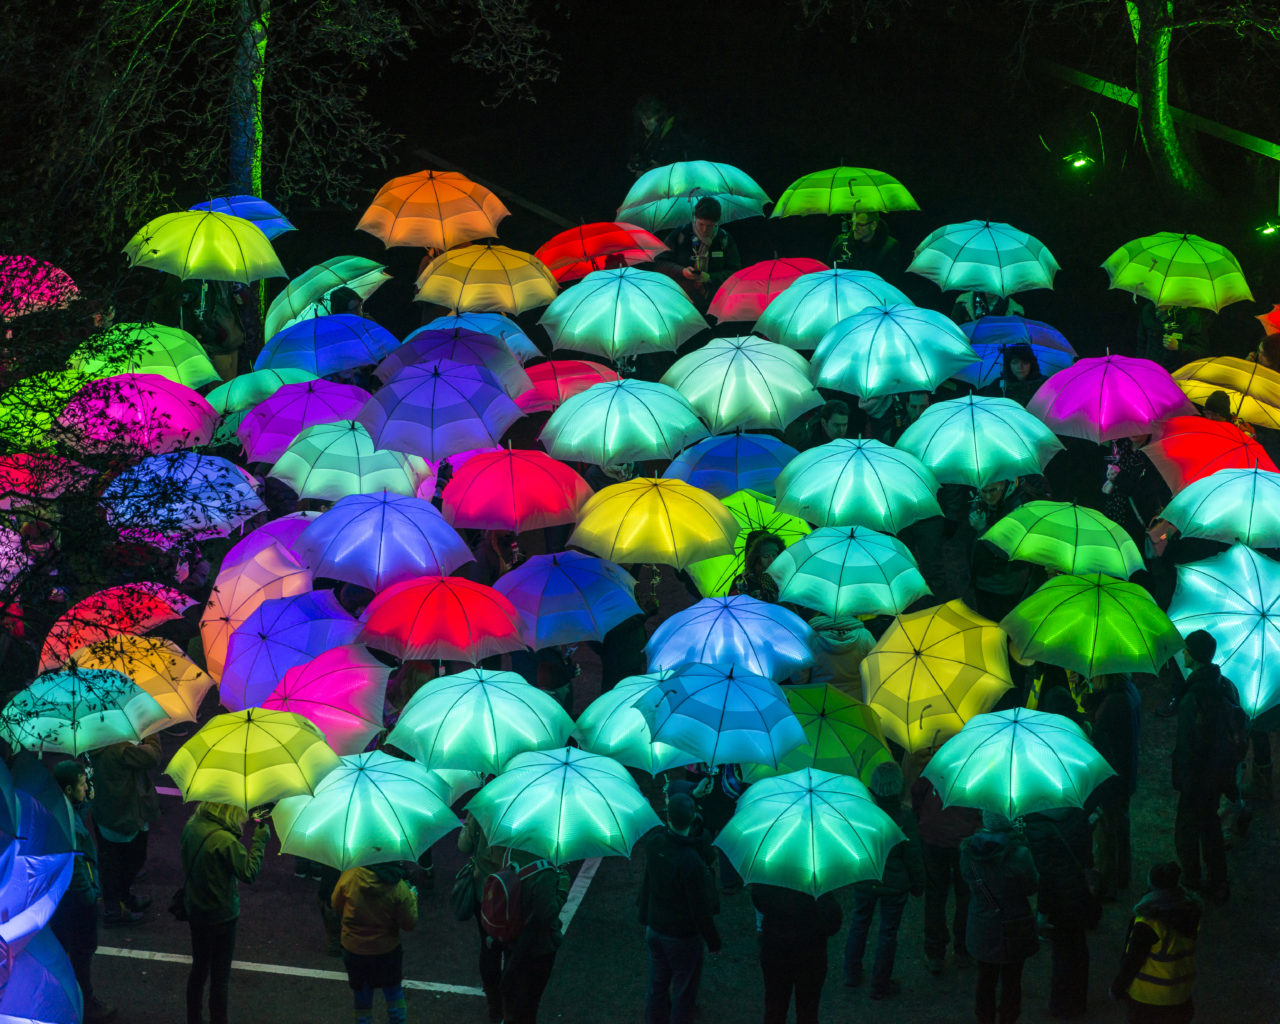 Umbrella Project, Cirque Bijou. Photo by Andre Pattenden. Courtesy of Artichoke and the artists.